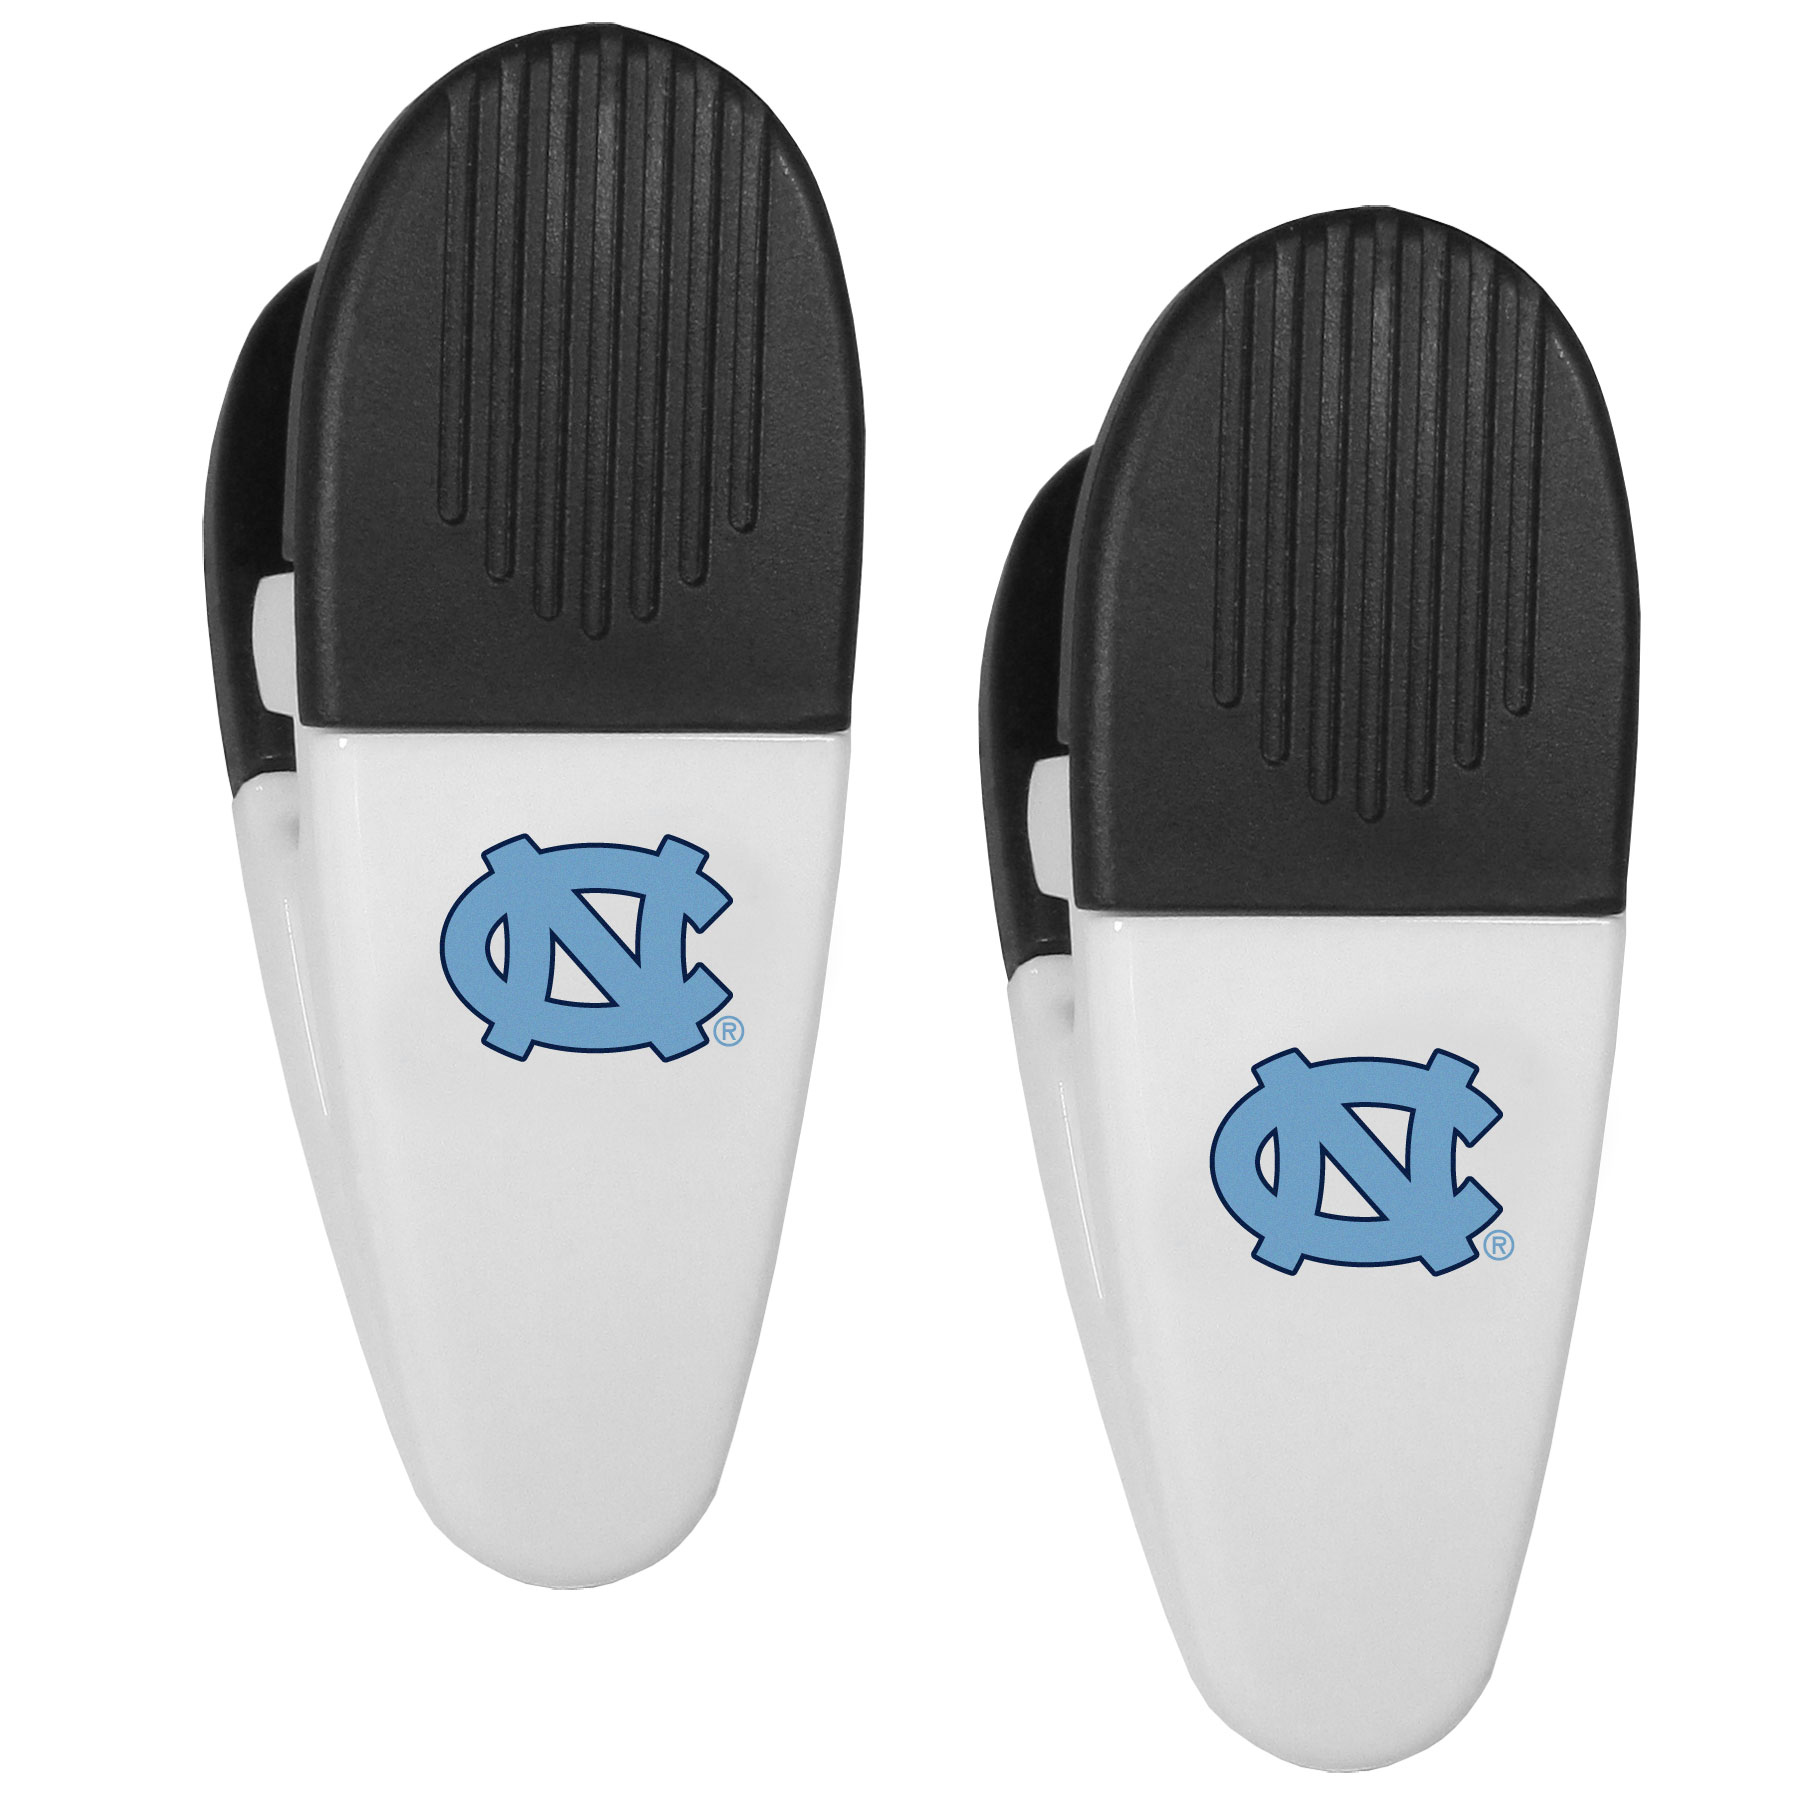 N. Carolina Tar Heels Mini Chip Clip Magnets, 2 pk - Our N. Carolina Tar Heels chip clip magnets feature a crisp team logo on the front of the clip. The clip is perfect for sealing chips for freshness and with the powerful magnet on the back it can be used to attach notes to the fridge or hanging your child's artwork. Set of 2 magnet clips, each clip is 3.5 inches tall and 1.25 inch wide.